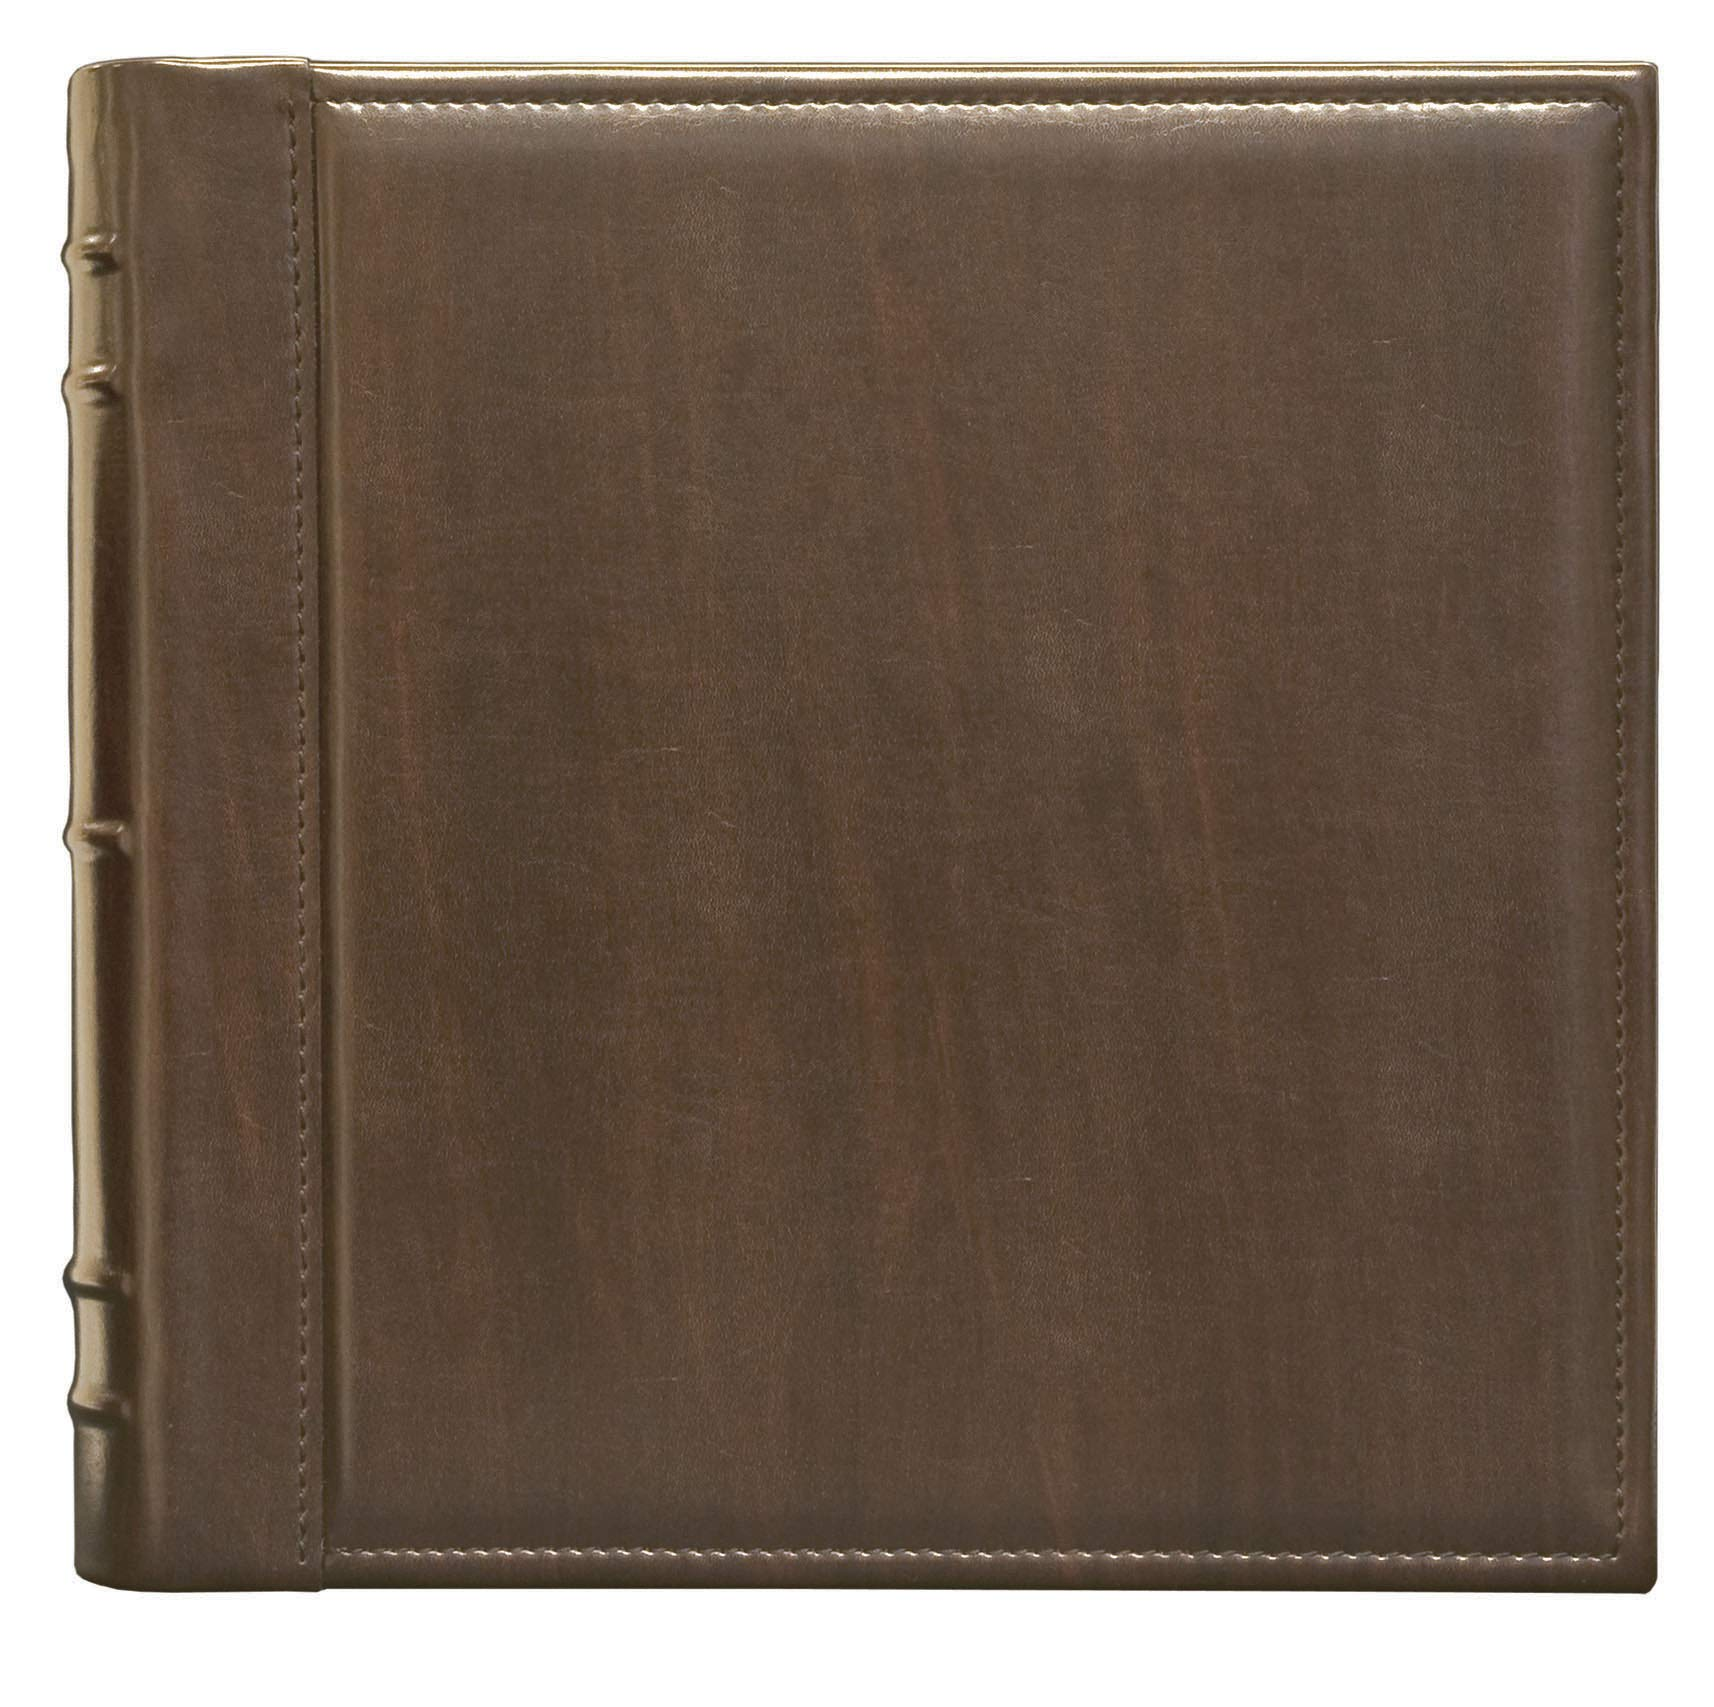 Innova Editions Bookbound, Photo Album Contains 40 13x13 Sheets (80 Pages), Darkbrown by Innova Editions